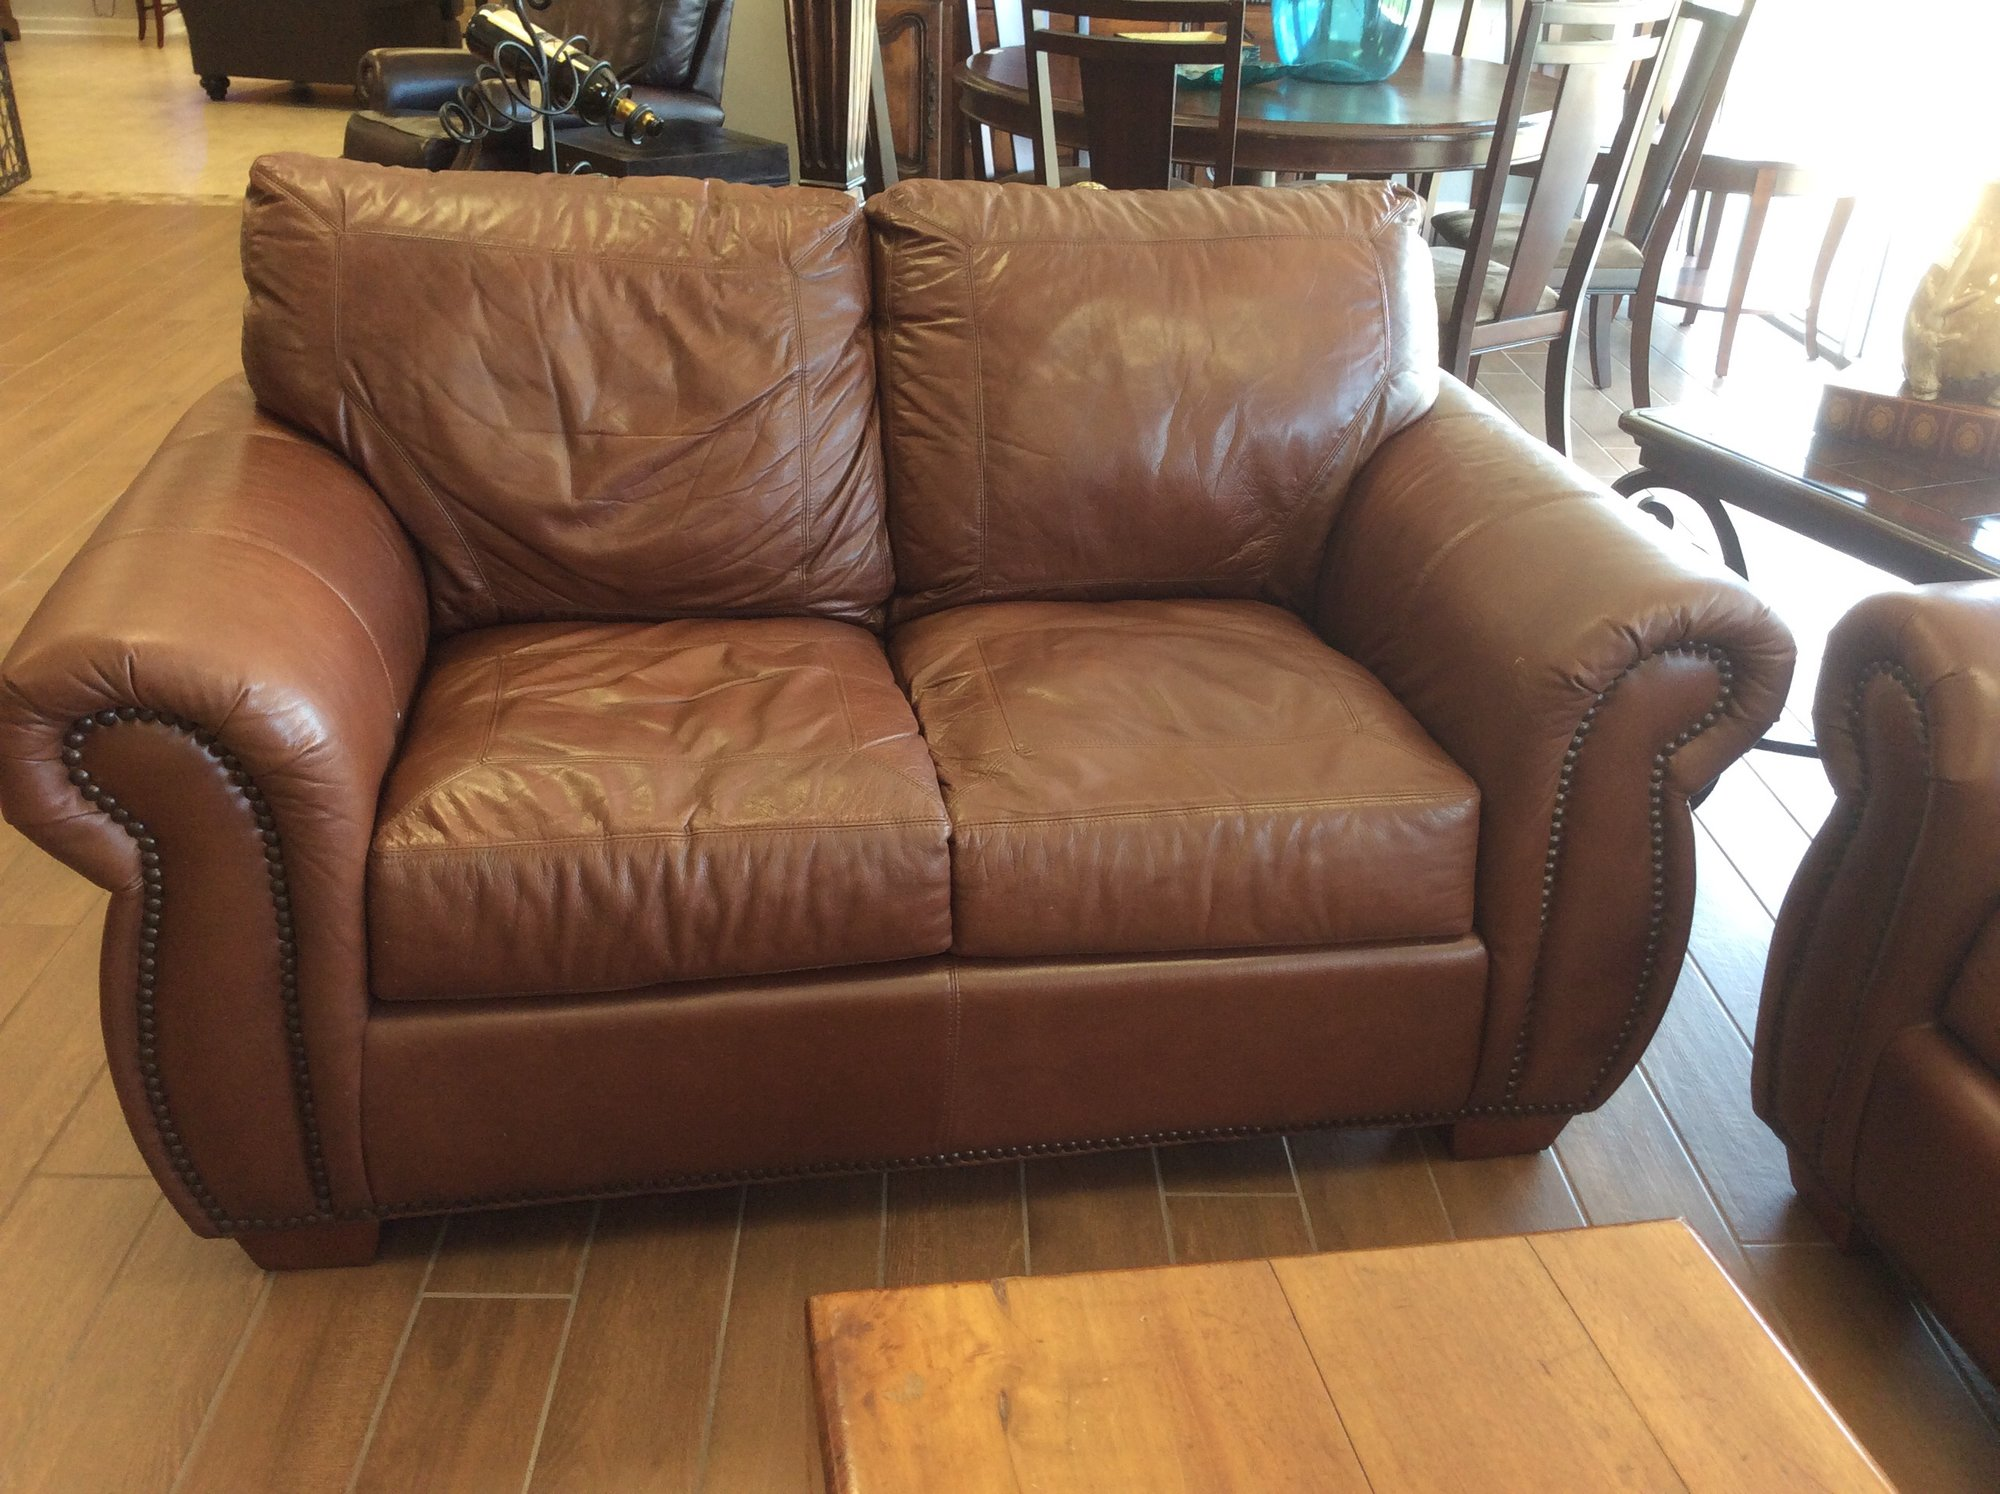 This Handsome Loveseat Features Soft Leather Upholstery, 2 Permanent Back